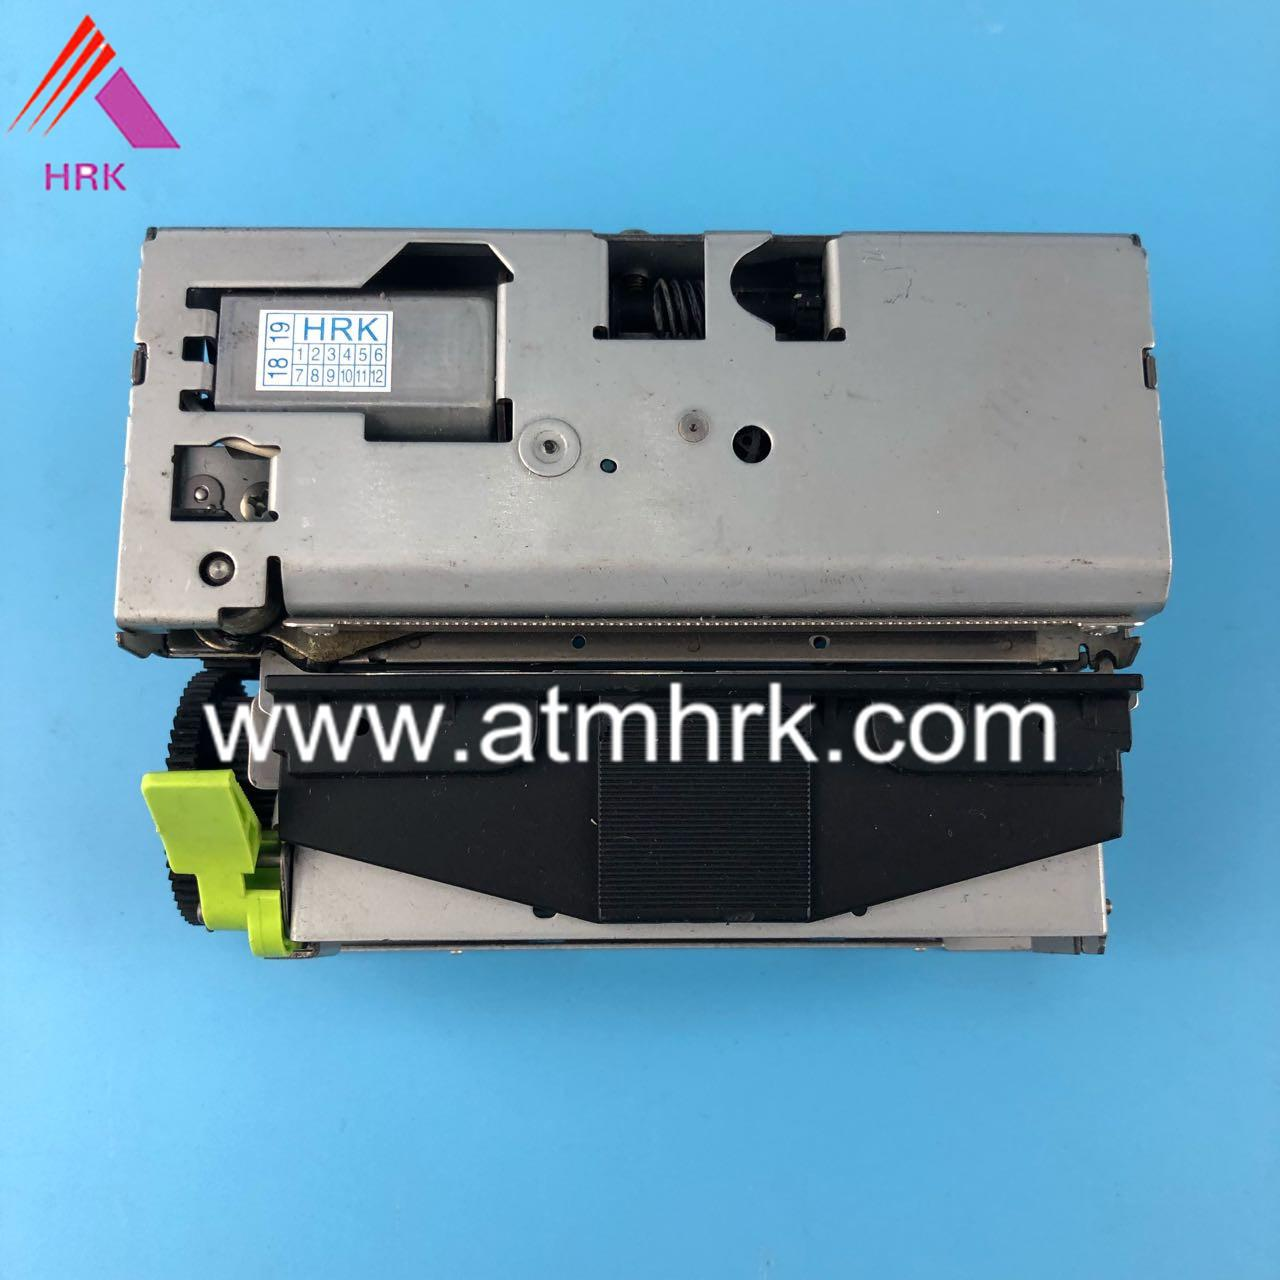 Buy cheap Original New Atm Spare Parts Thermal Print Head For Grg Atm Machines from Wholesalers